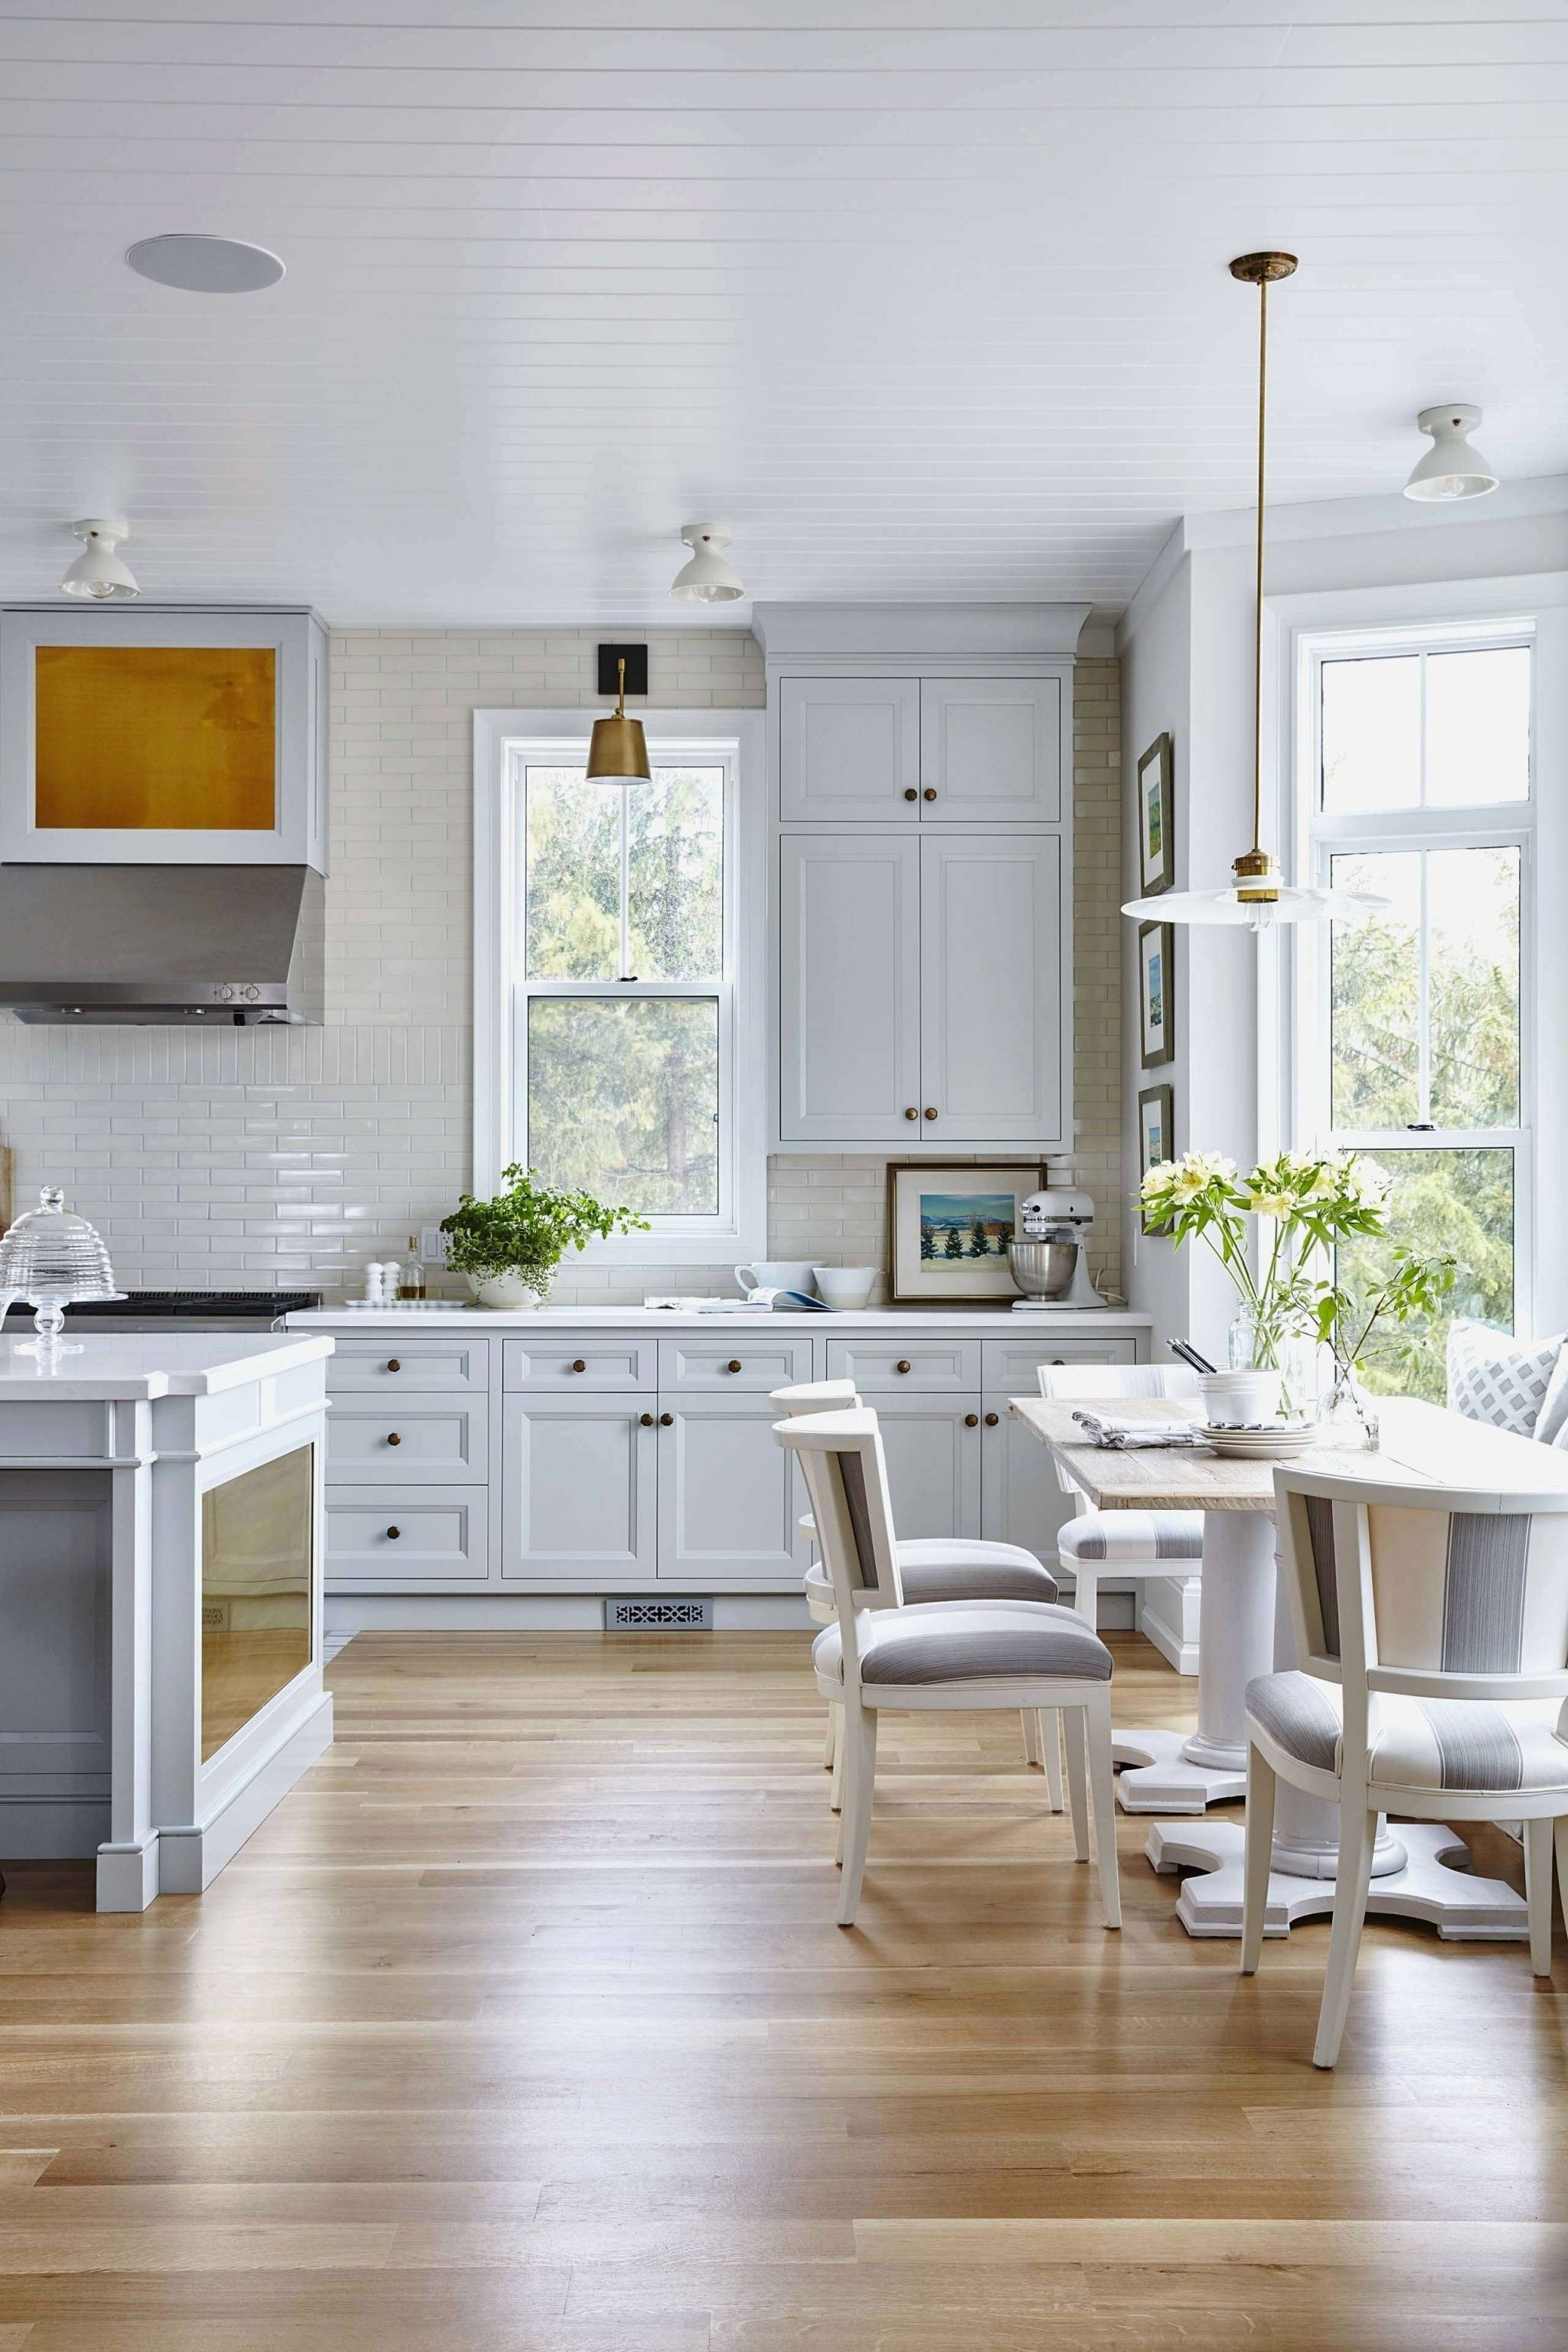 tiny apartment design luxury kitchen joys kitchen joys kitchen 0d 1 amazing only if luxury kitchen